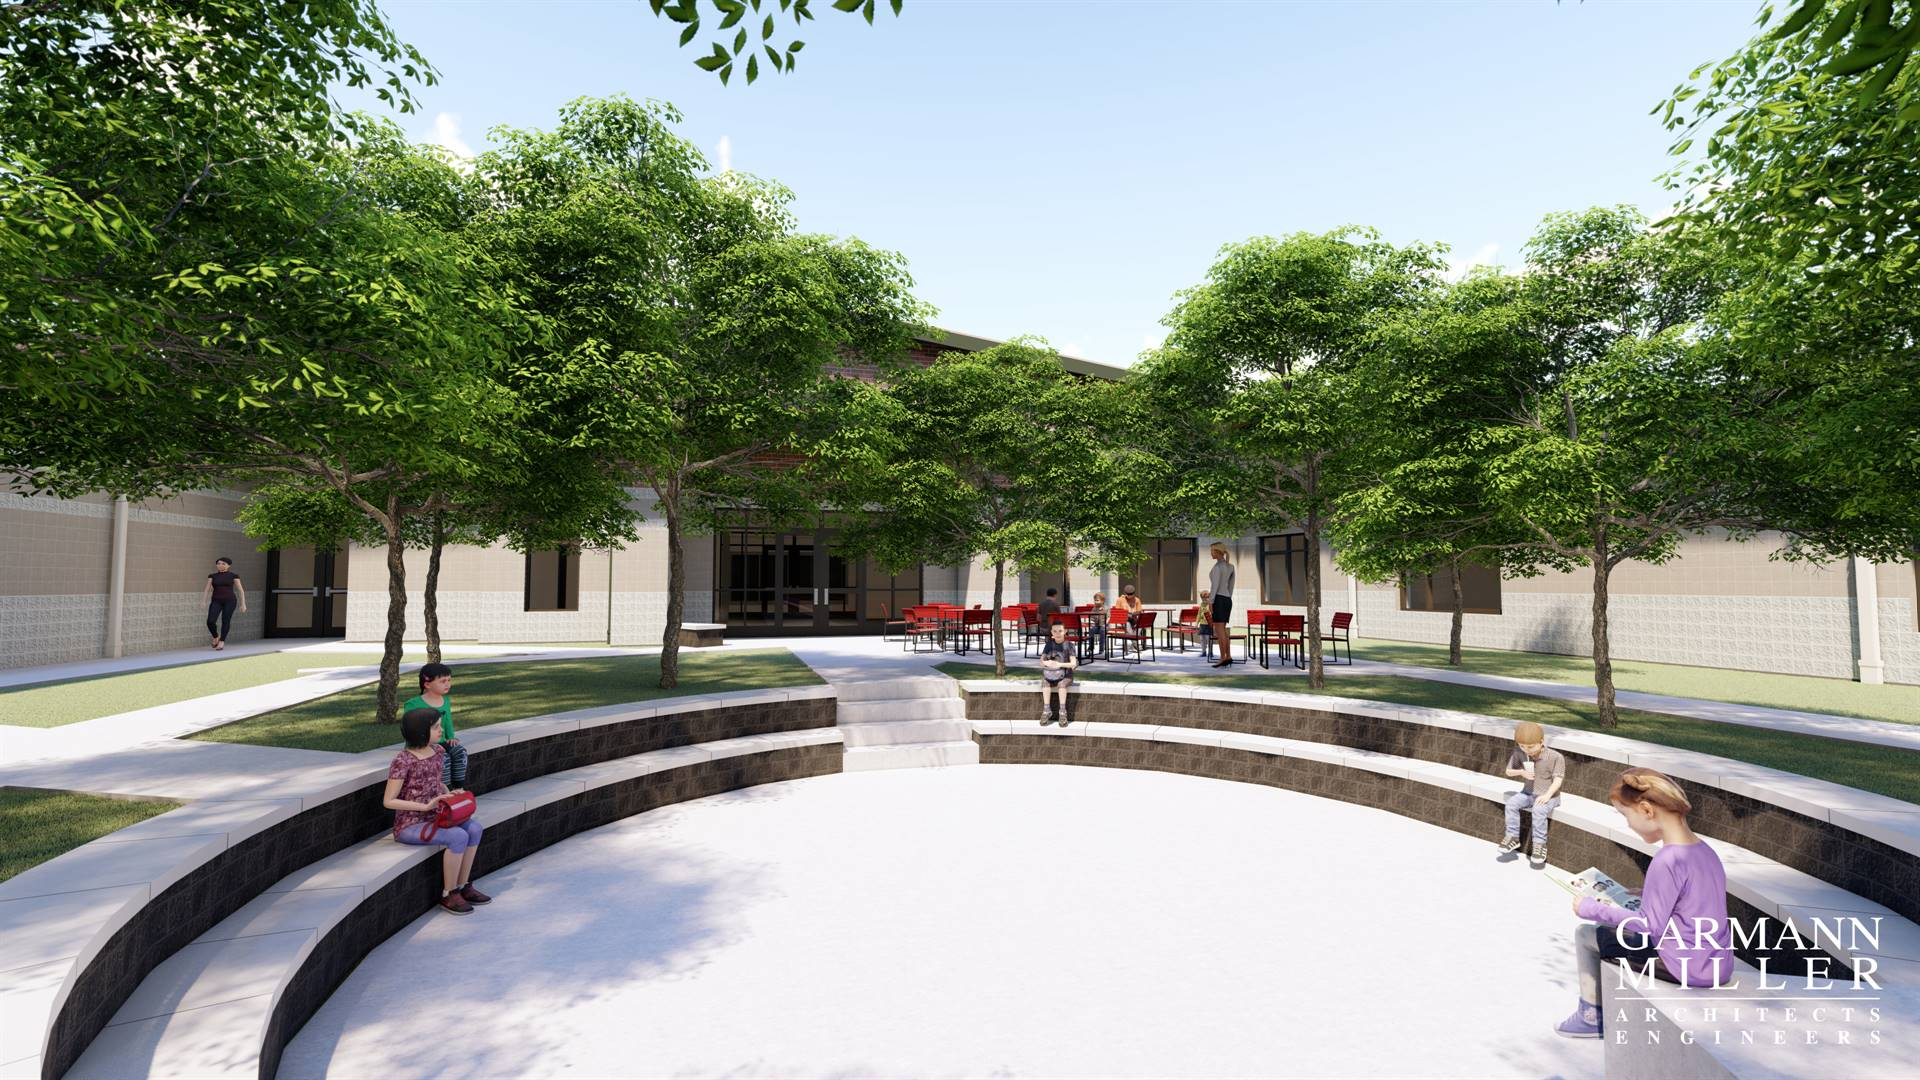 Main Courtyard and Outdoor Learning Space of the New Building